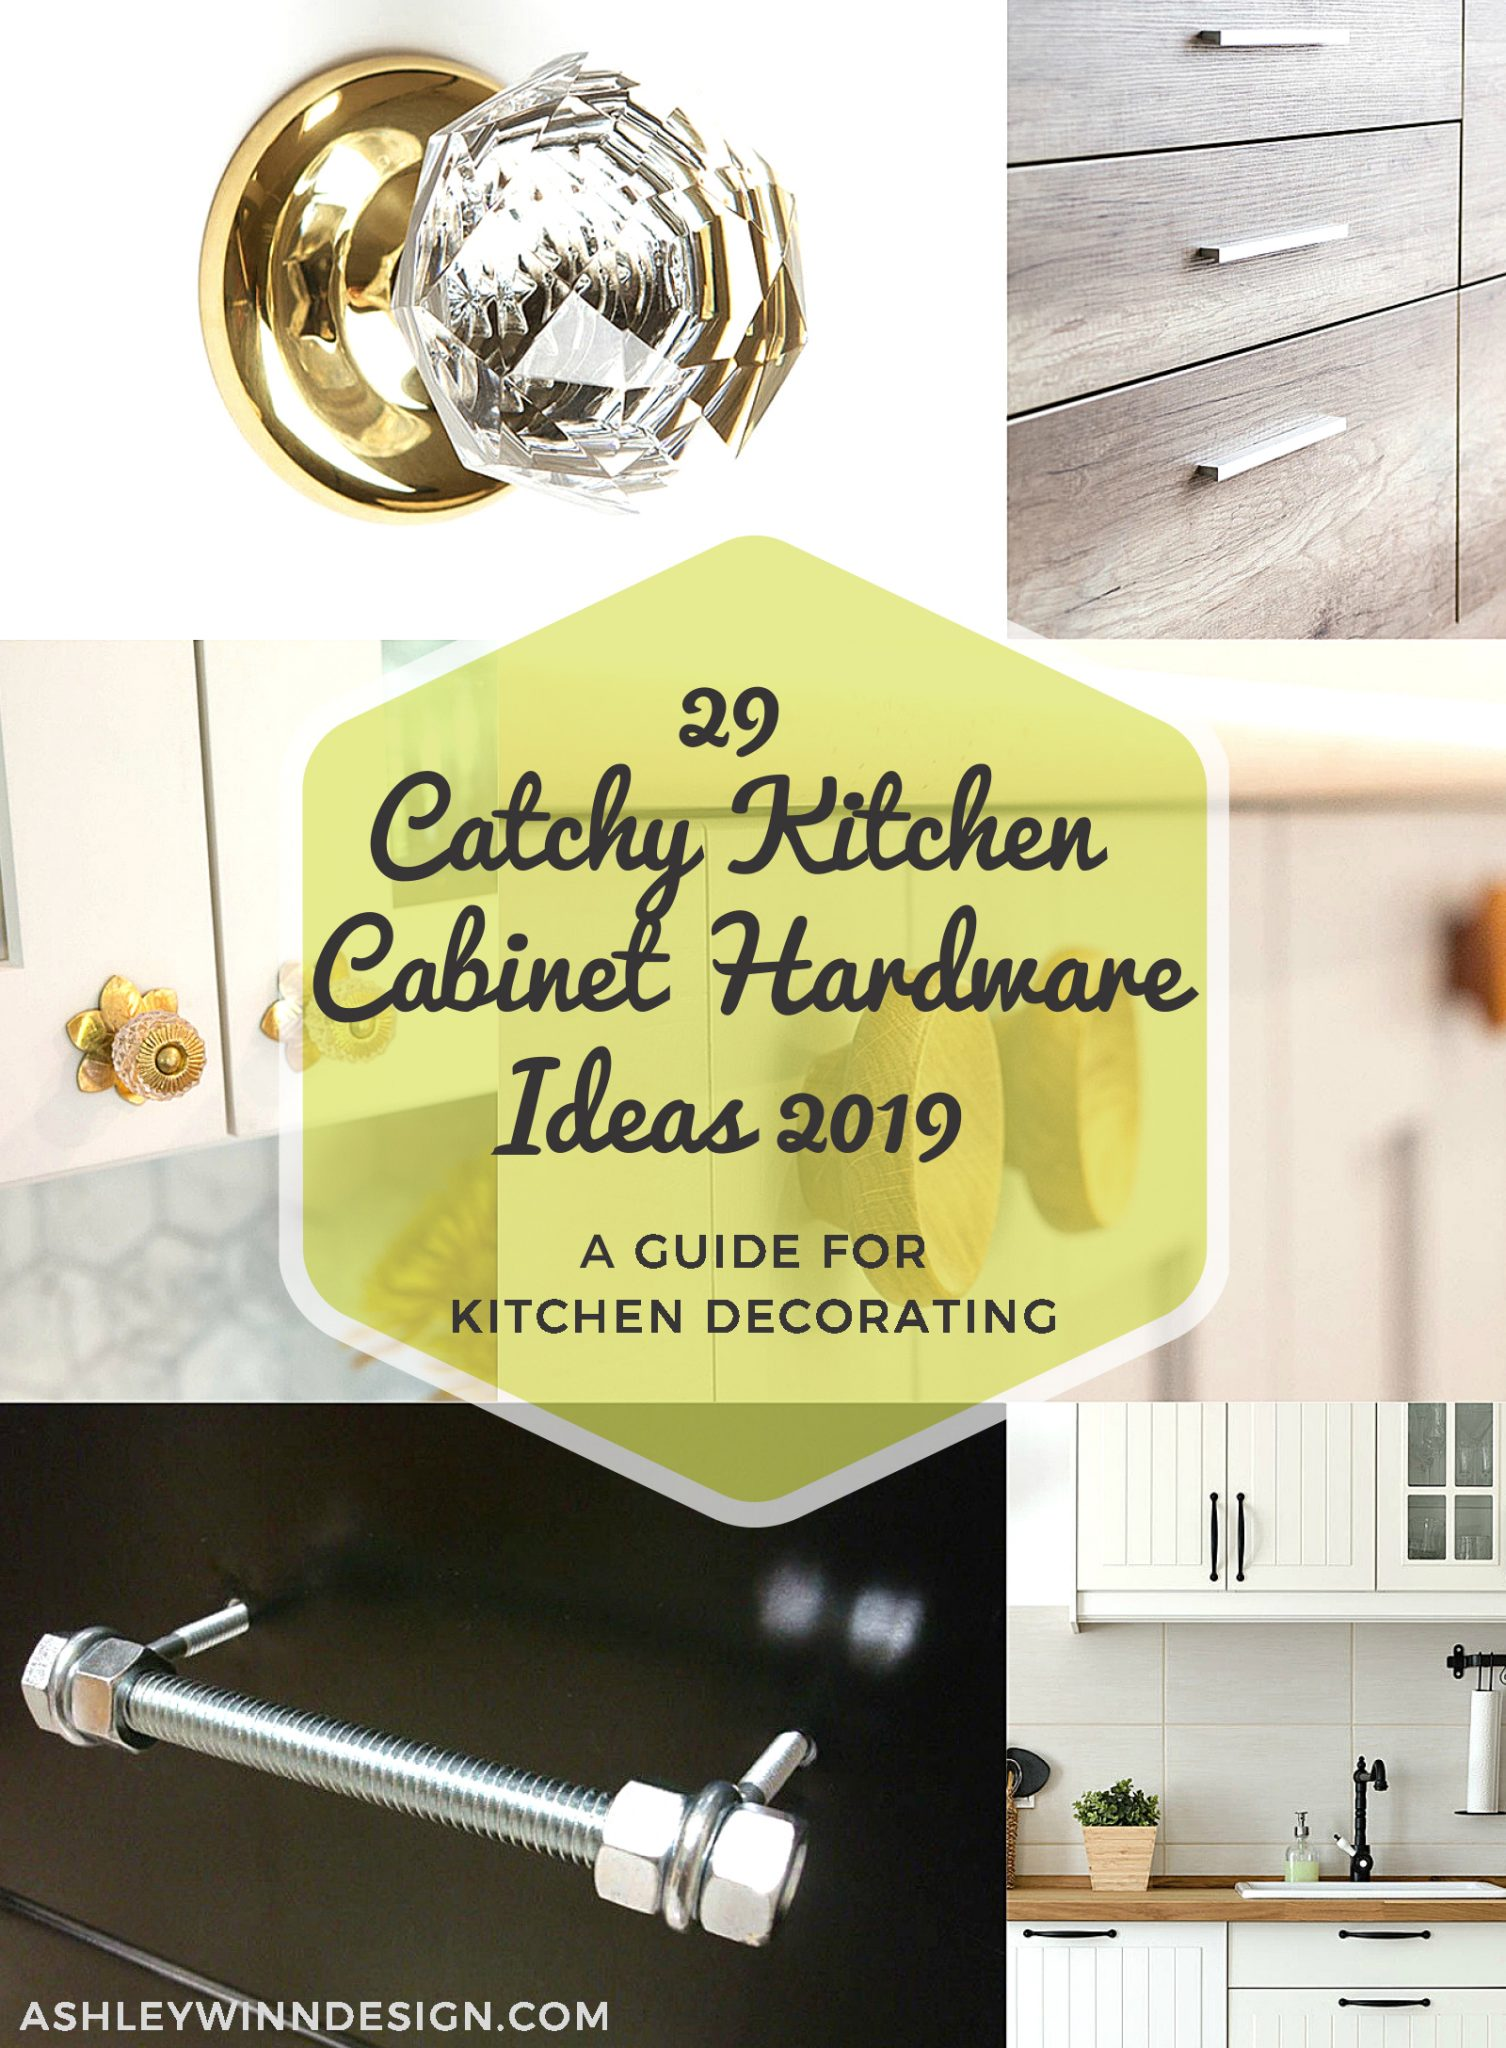 10 Kitchen Cabinet Tips: 29 Catchy Kitchen Cabinet Hardware Ideas 2019 (A Guide For